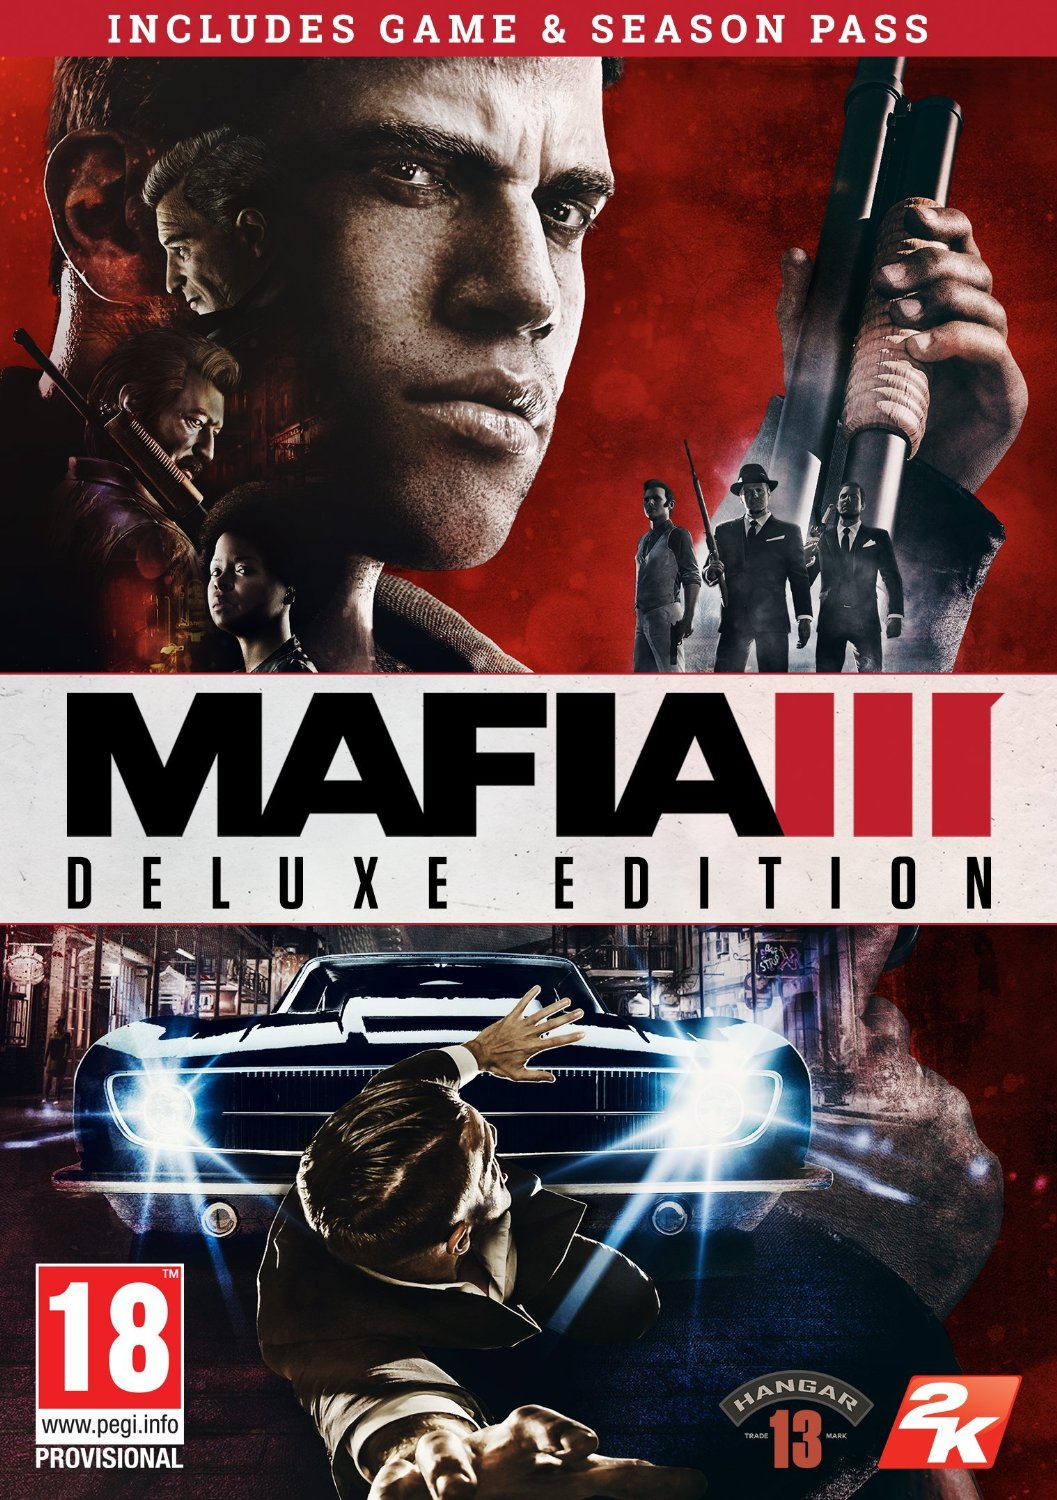 Mafia 3/III Digital Deluxe Ed. (Steam KEY) +Season Pass